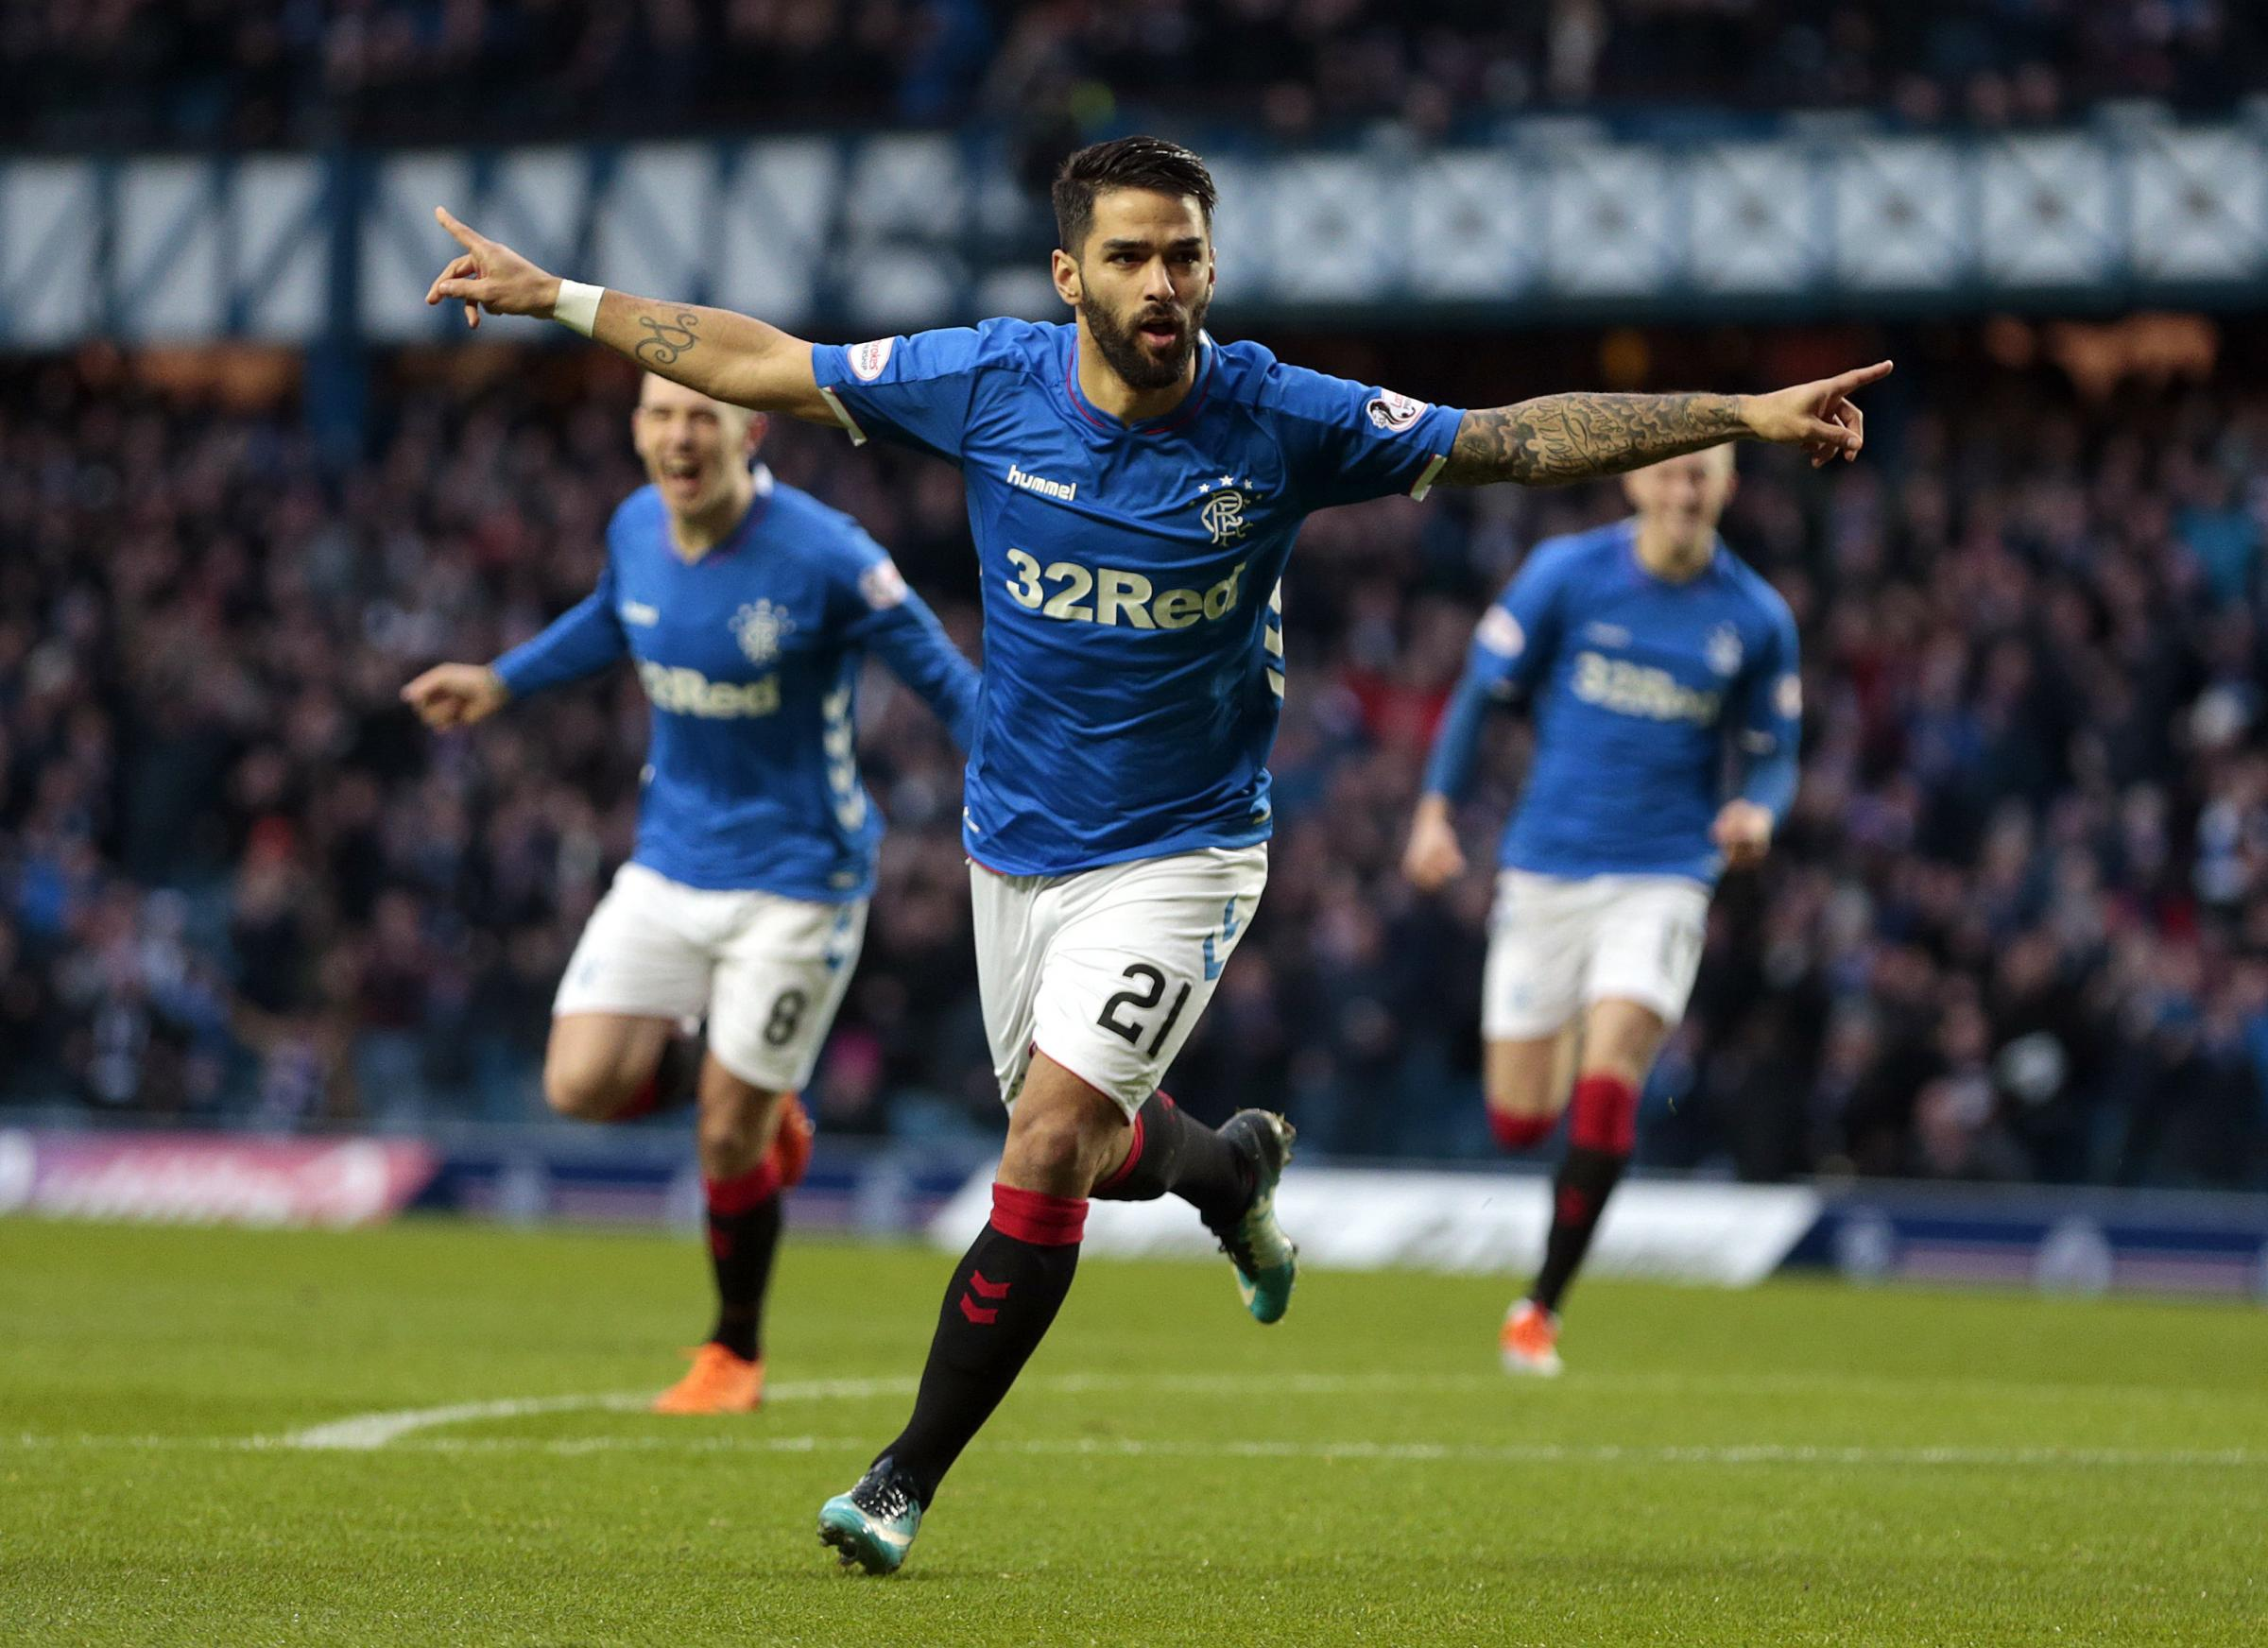 Daniel Candeias wheels away after scoring an early winner for Rangers against Hamilton.